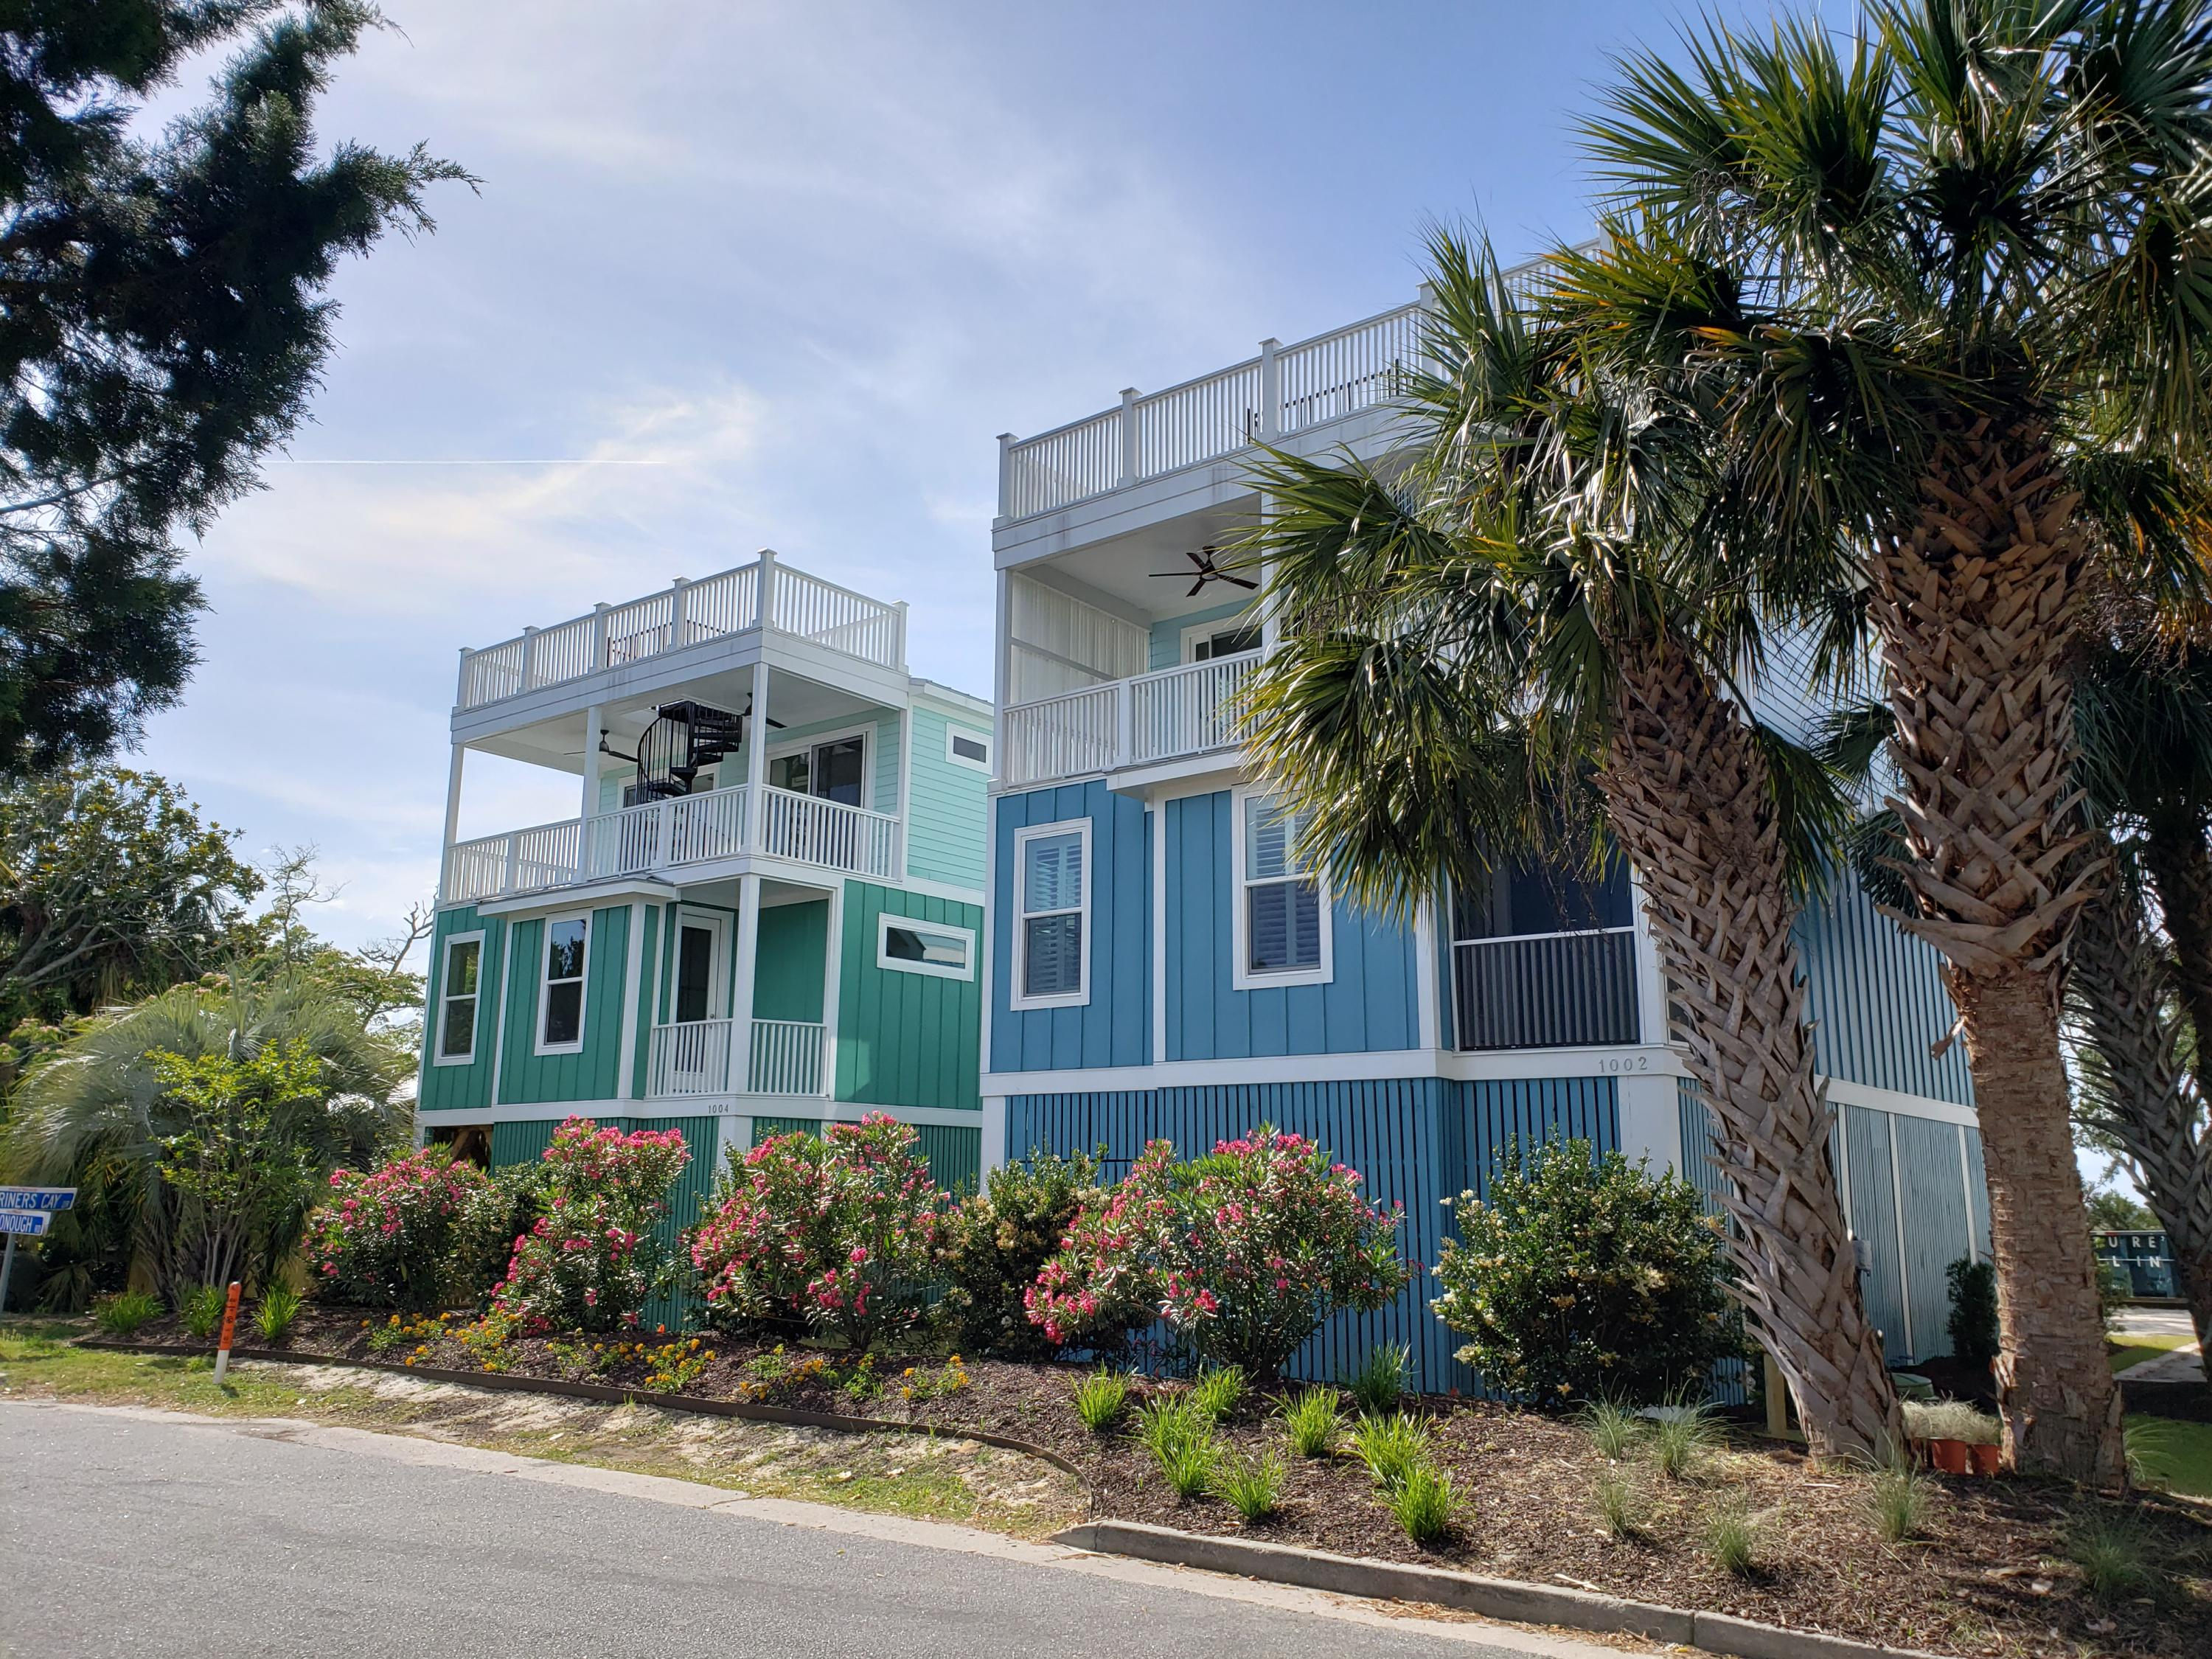 Mariners Cay Homes For Sale - 1004 Mariners Cay, Folly Beach, SC - 58